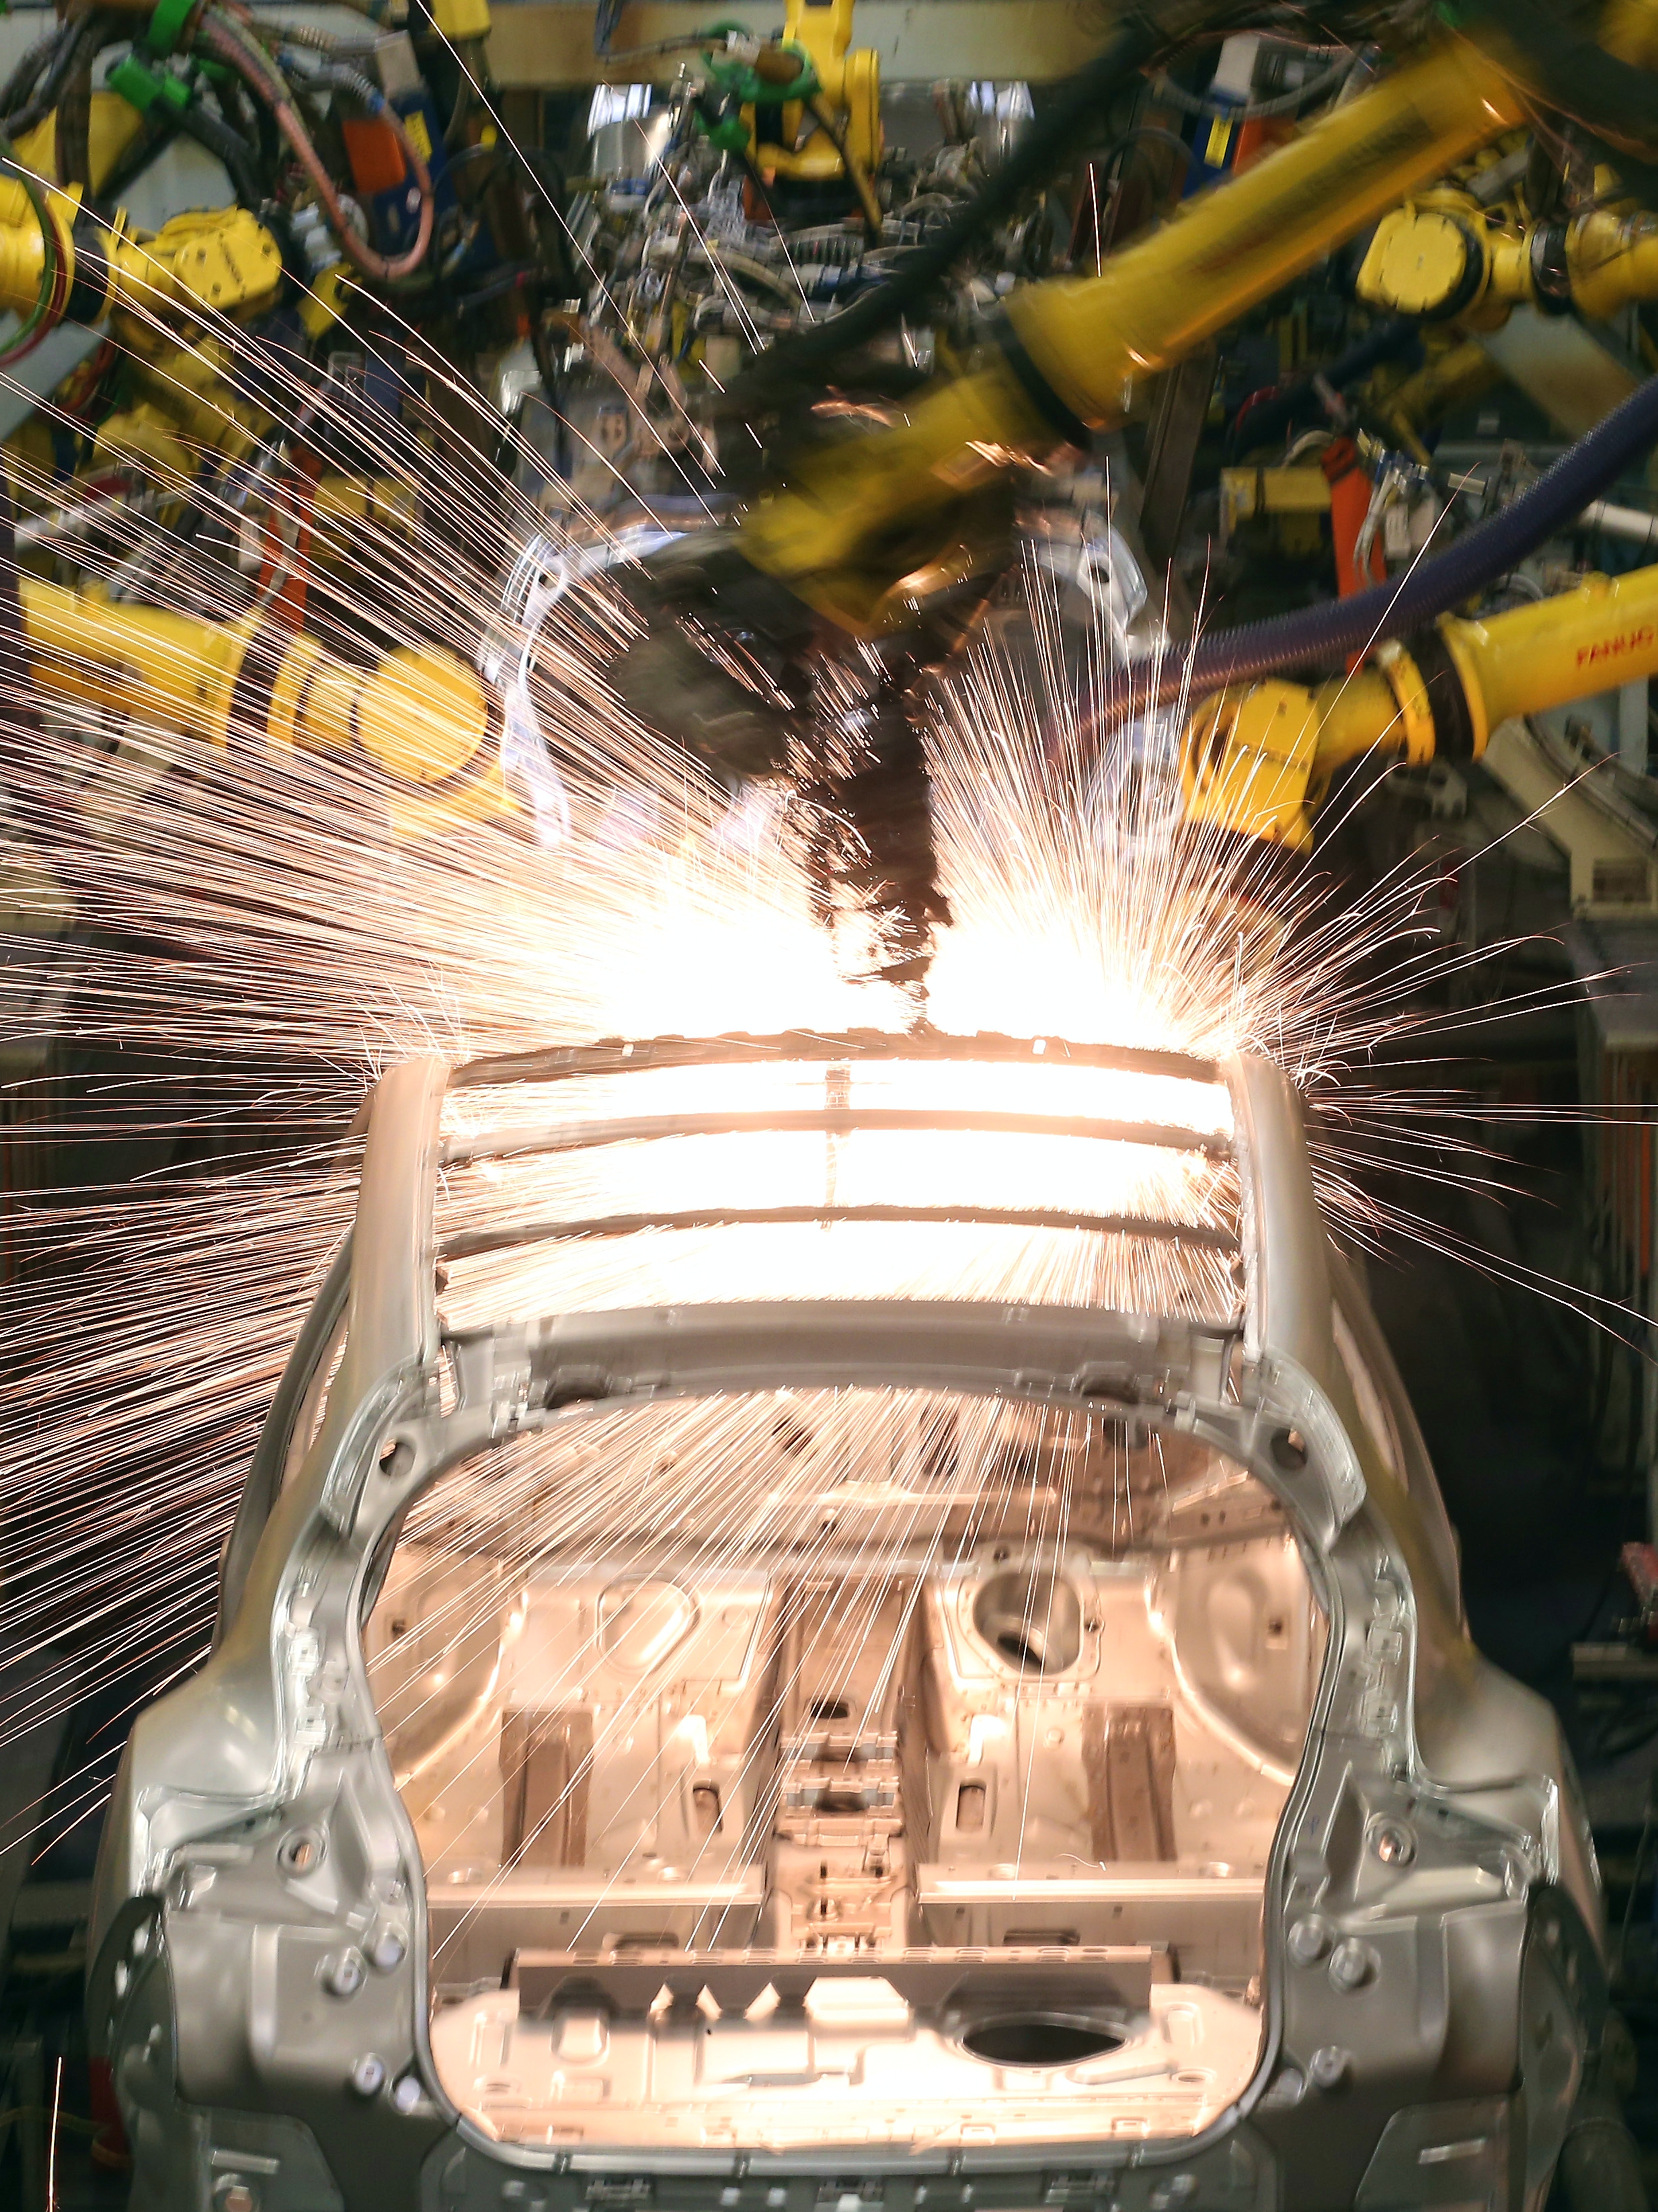 Gr together with A B K furthermore Robotic Arms Assemble And Weld The Body Shell Of A Nissan Car On The Production Line At Nissans Sun besides Maxresdefault as well Rt Plain. on zipcar sign in